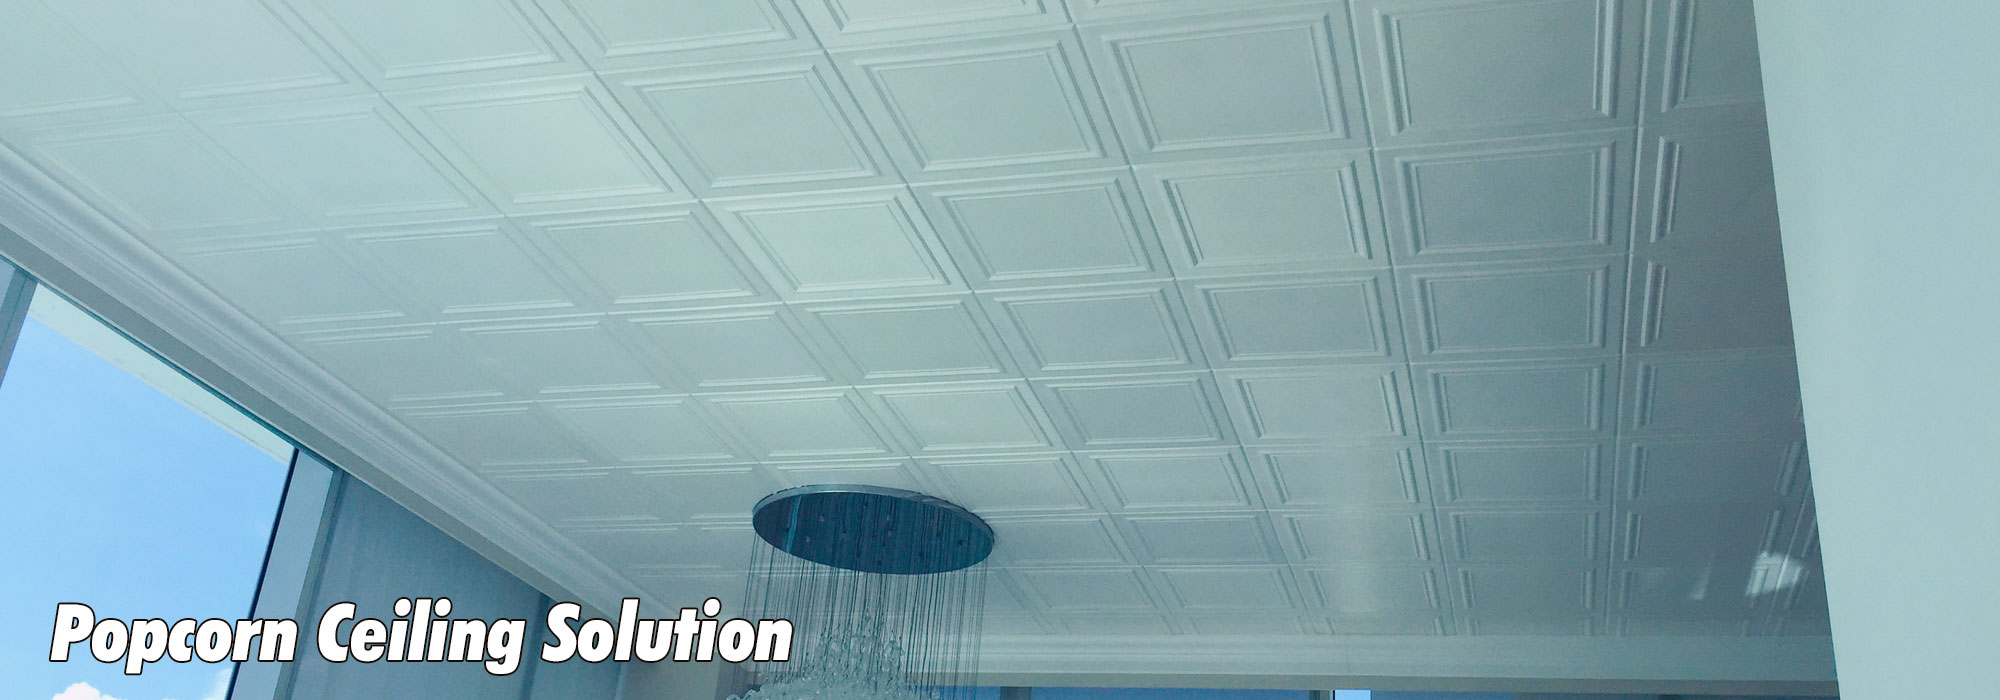 Popcorn Ceiling Solution